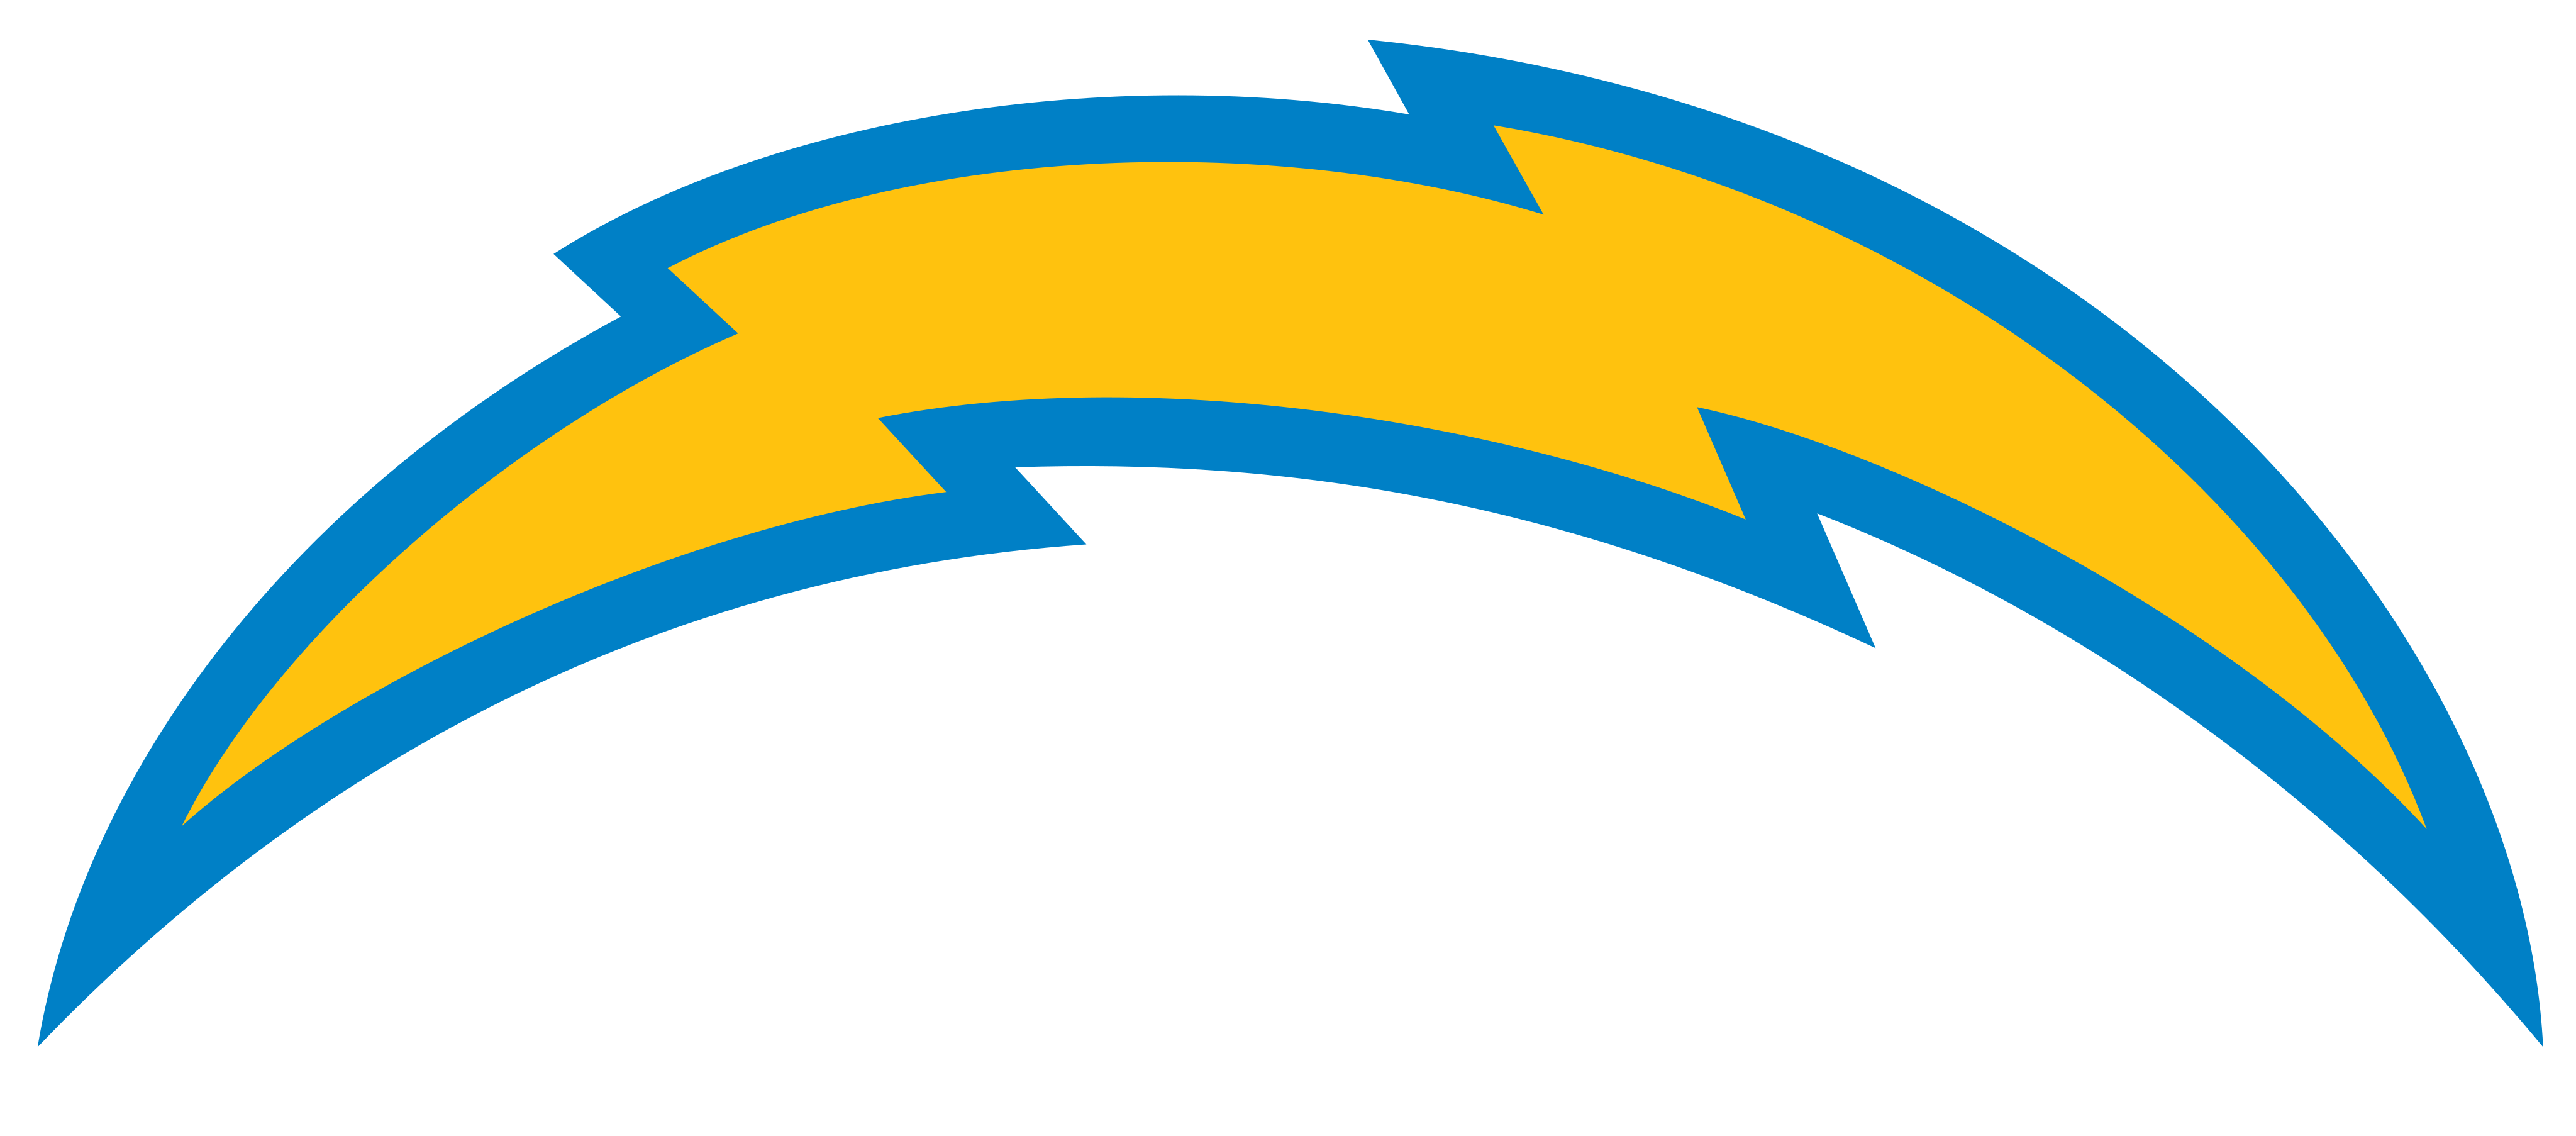 los angeles chargers logo 2 - Los Angeles Chargers Logo